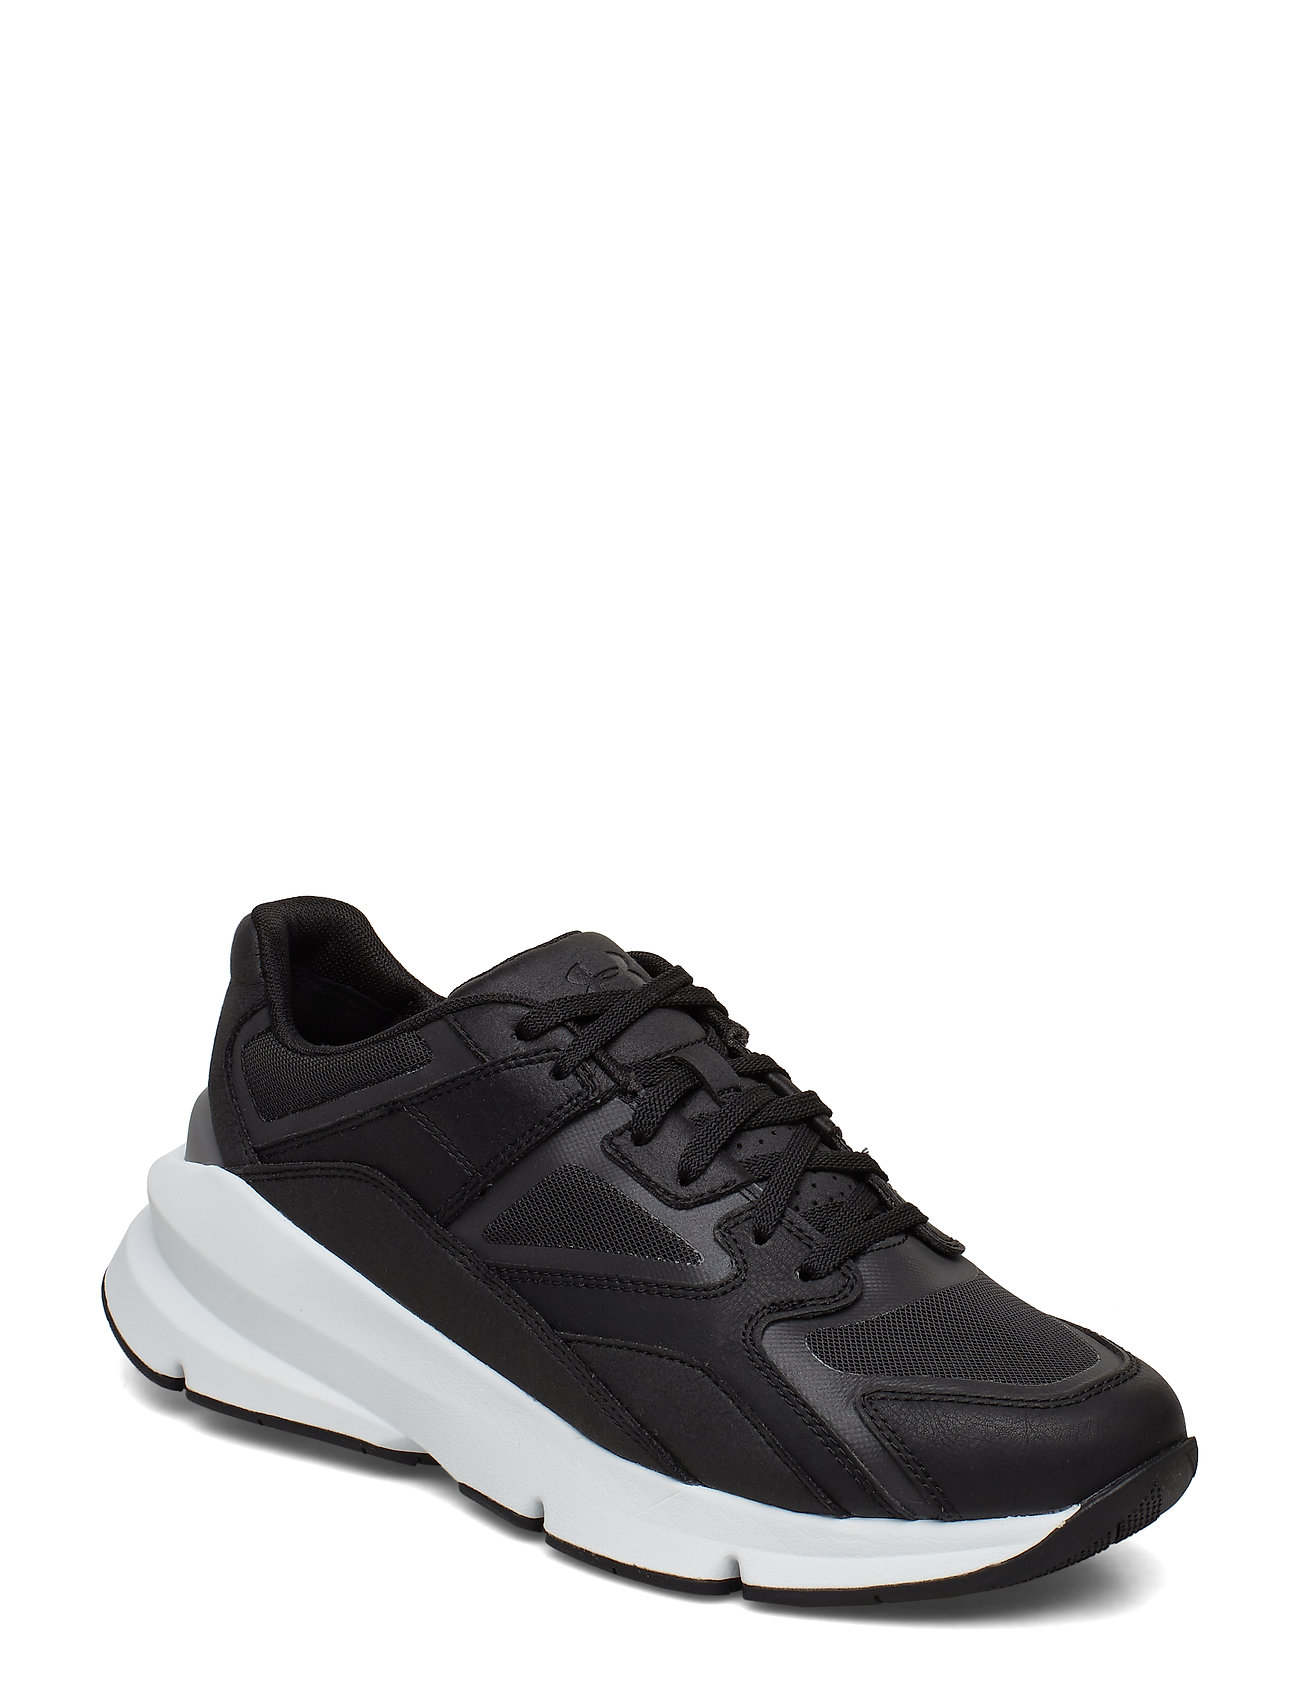 Under Armour Ua Forge 96 Clrshft Low-top Sneakers Sort Under Armour